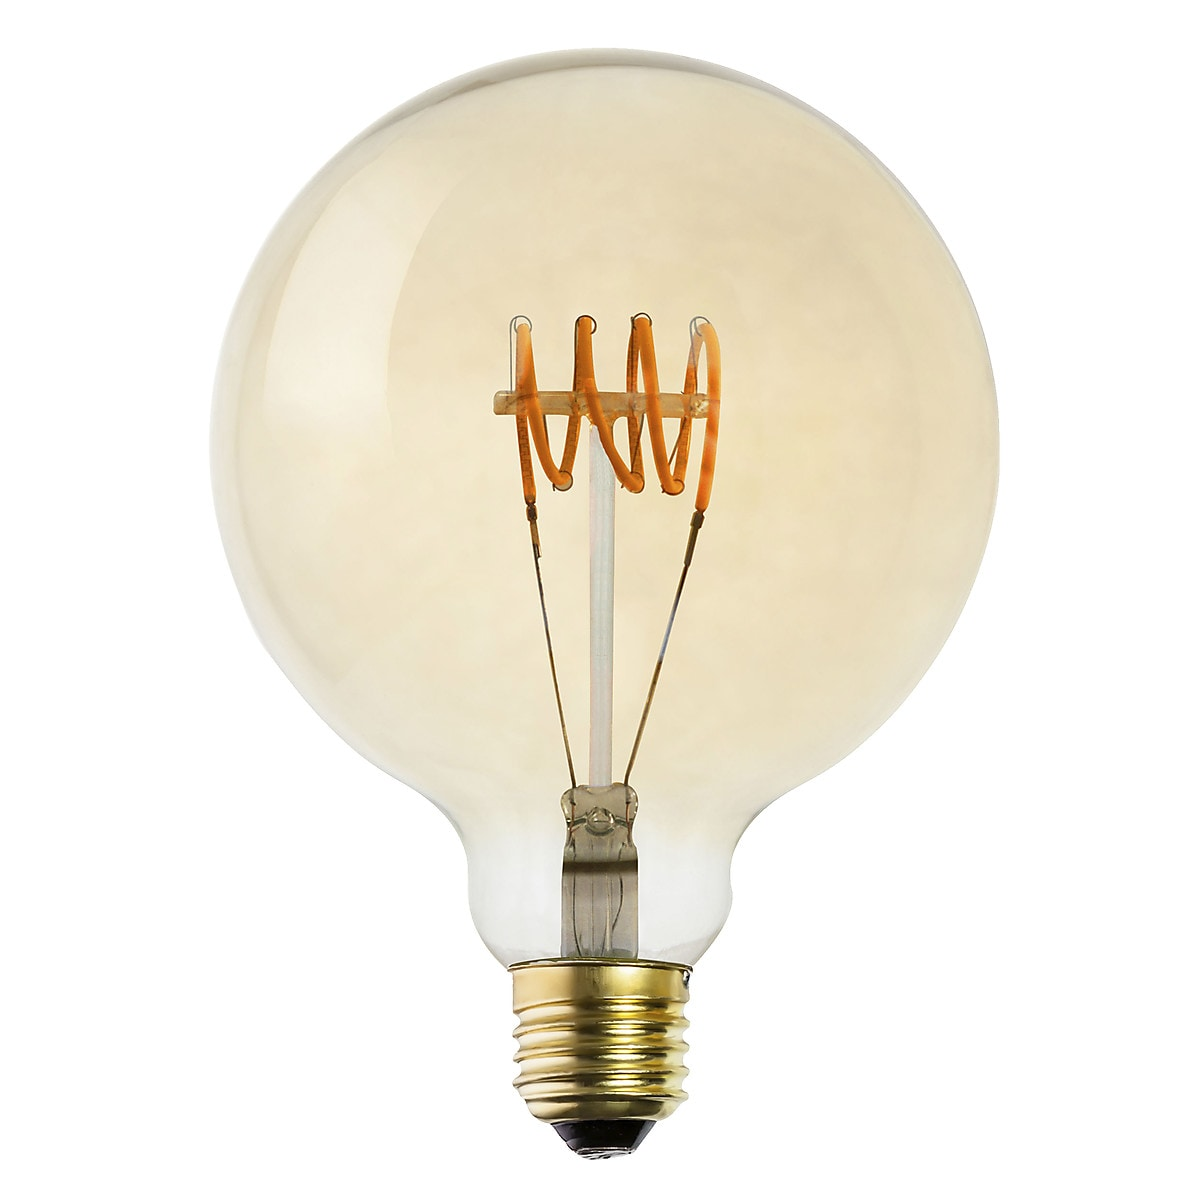 Northlight E27 Dimmable Globe LED Bulb